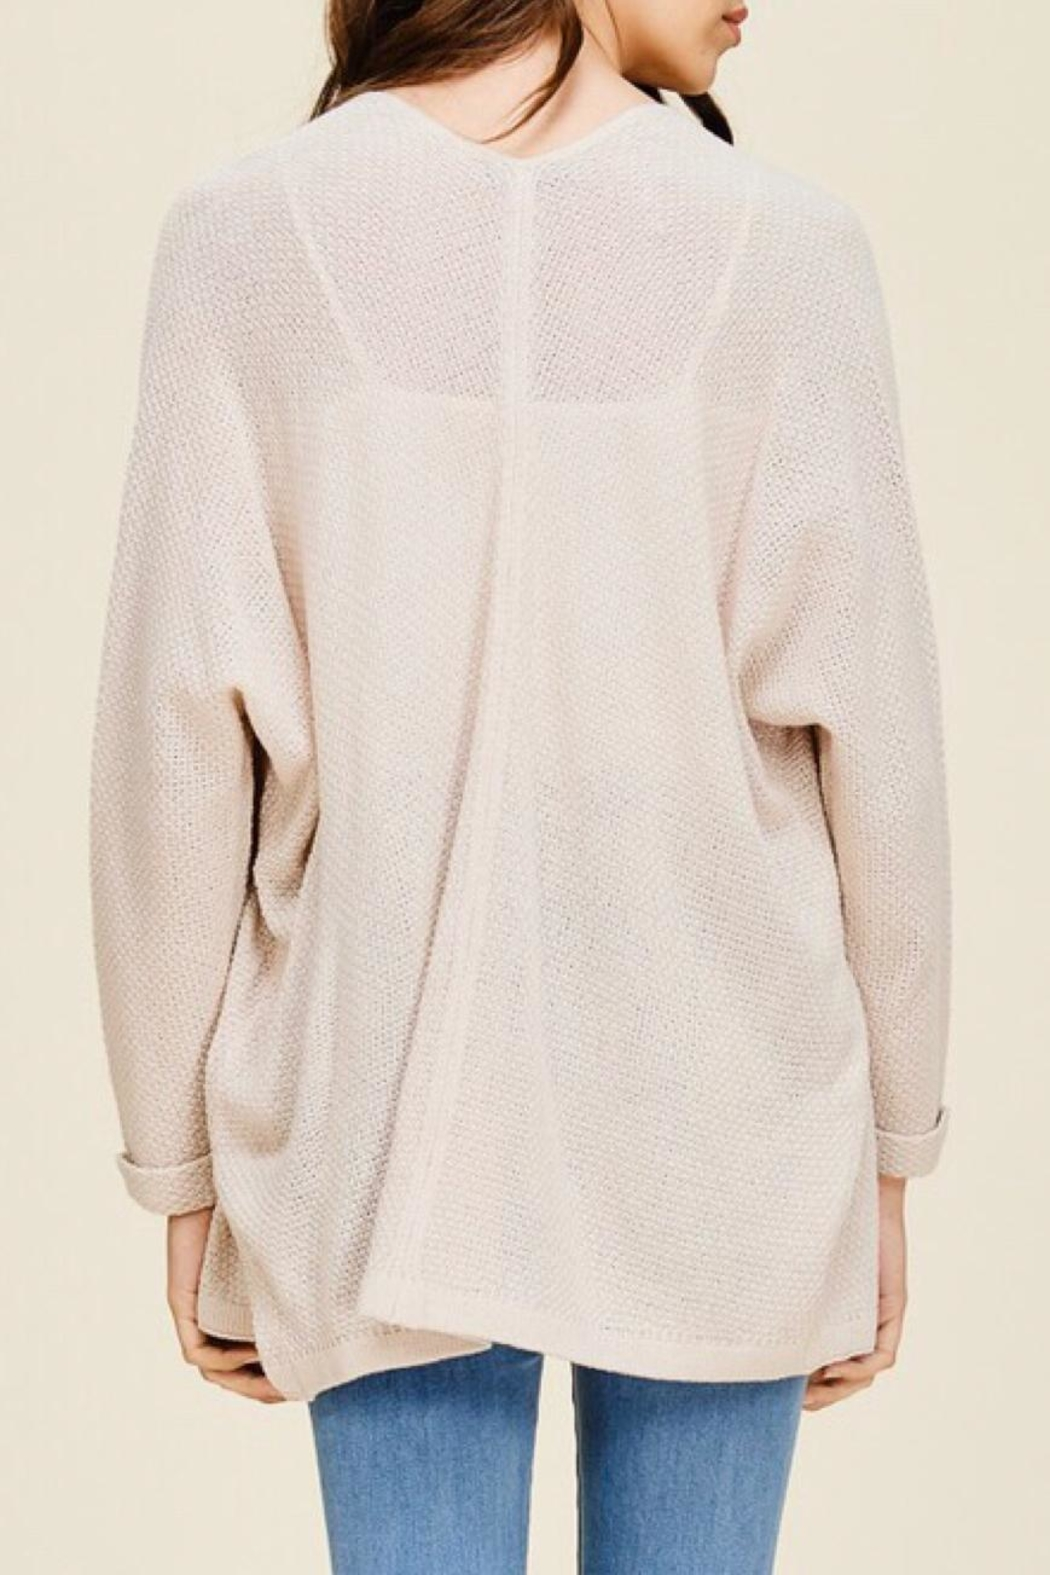 LuLu's Boutique Dolman Sleeve Cardigan - Side Cropped Image